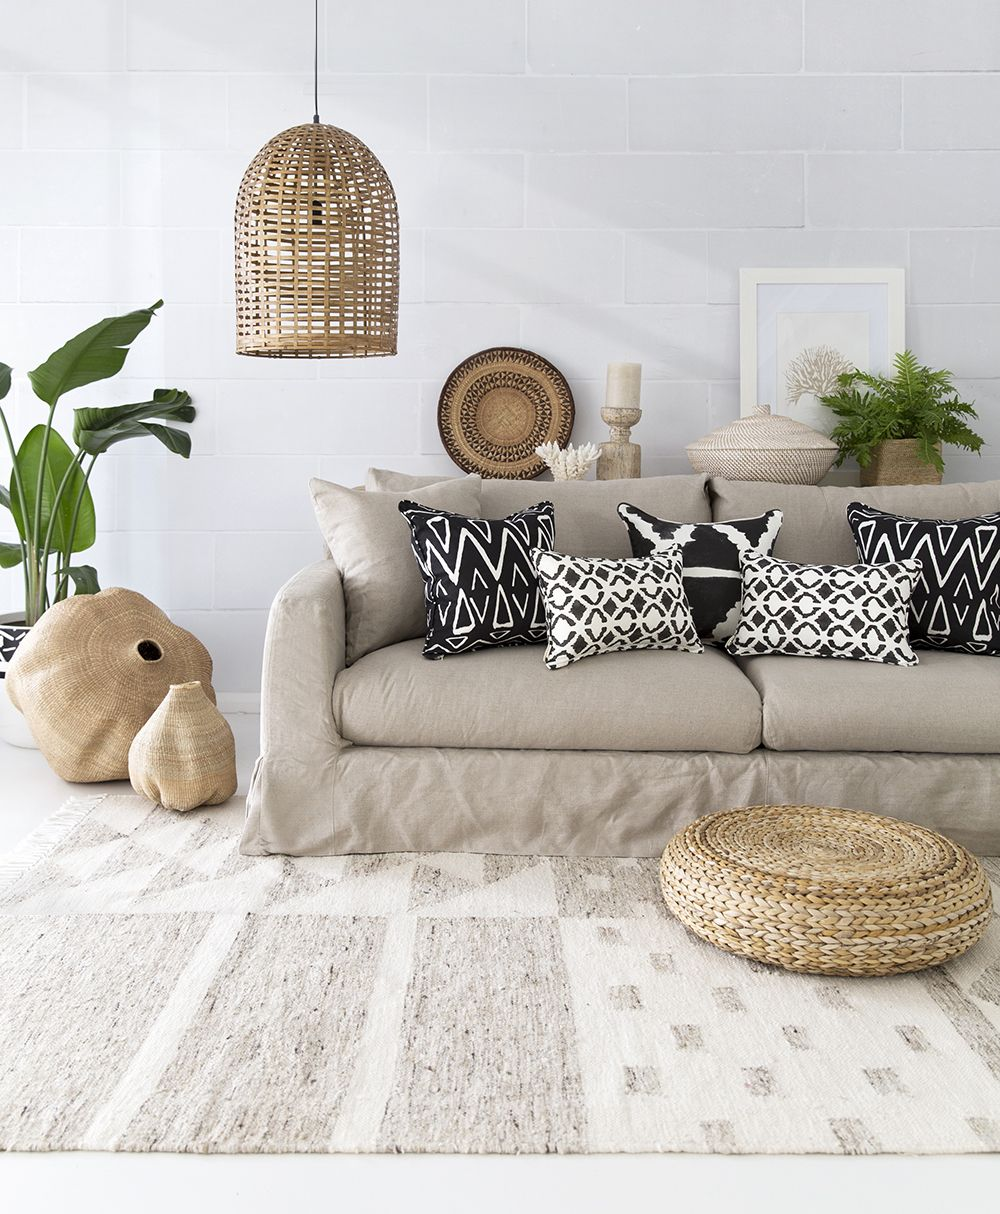 tribal luxe interior josie and june australian made cushions photo and styling by the - Aus Weier Couch Und Sofa